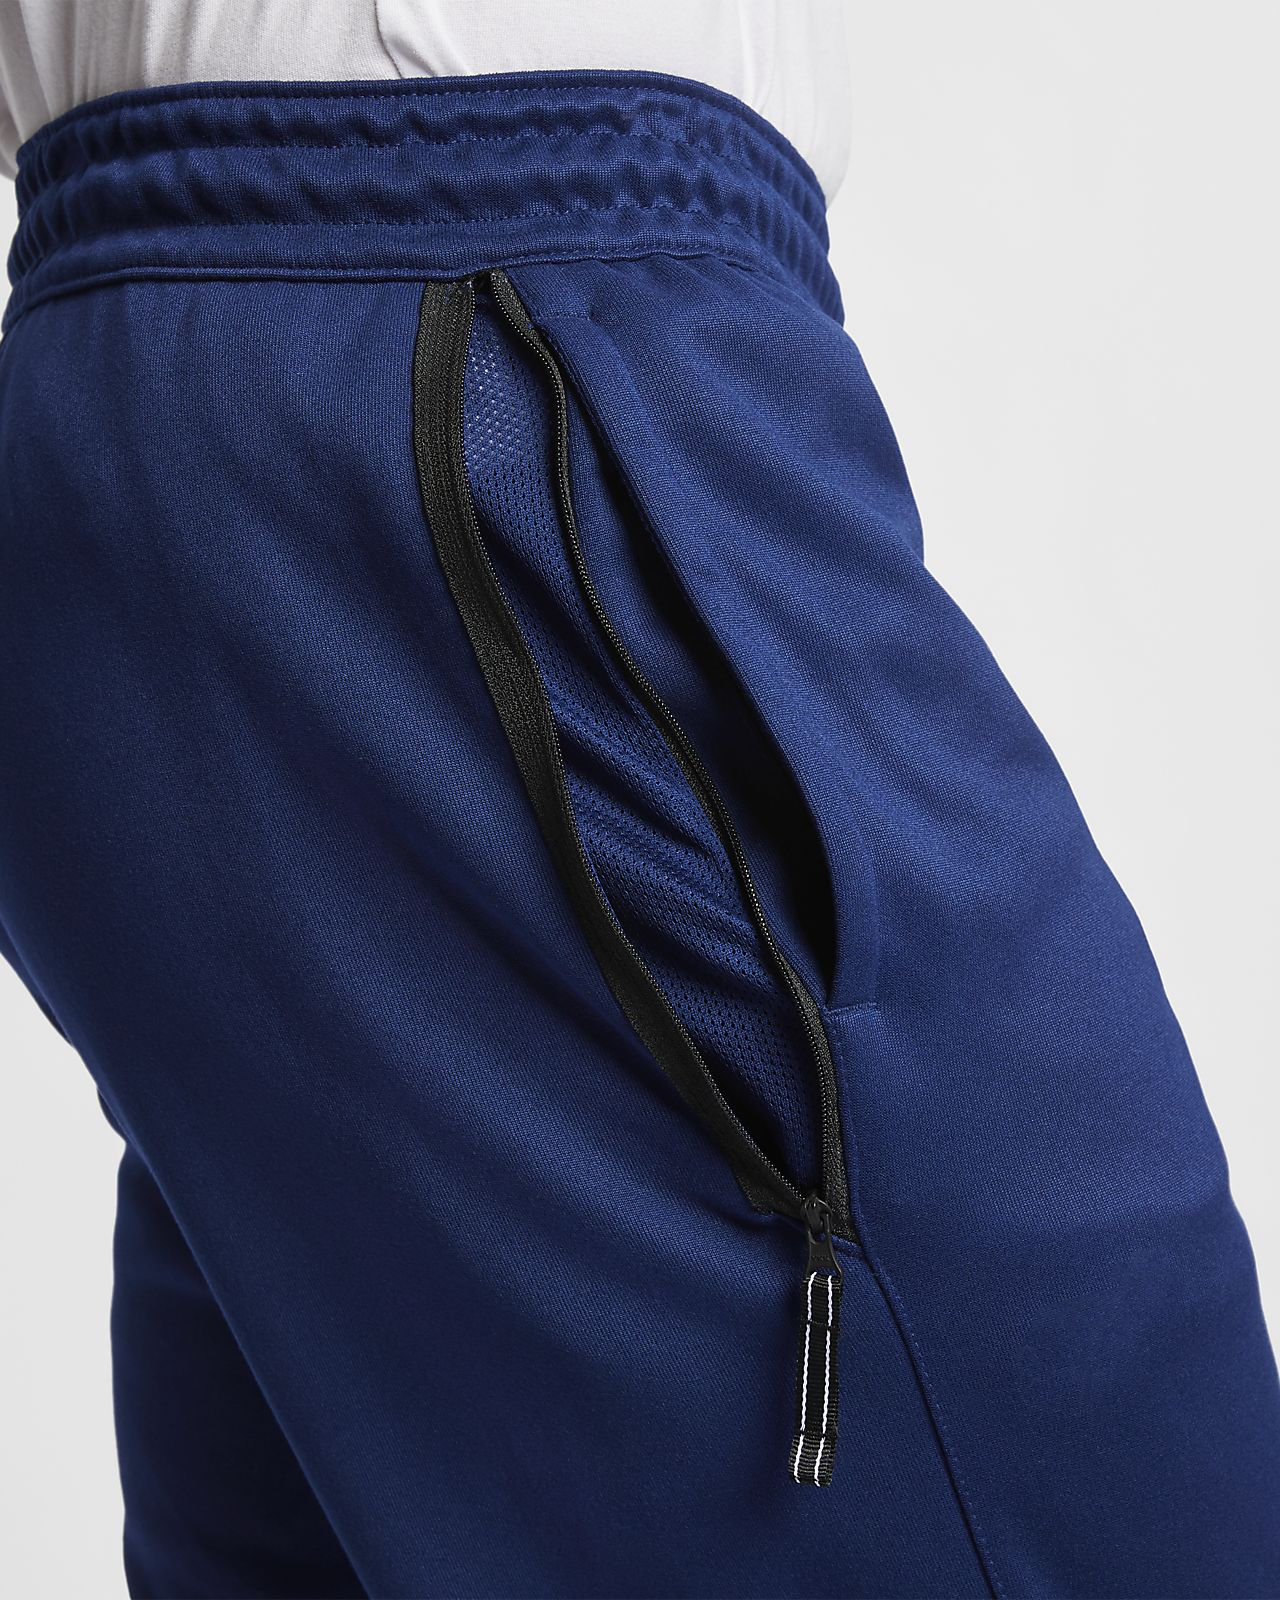 e861c6b86f8a Low Resolution Nike Spotlight Men s Basketball Pants Nike Spotlight Men s  Basketball Pants